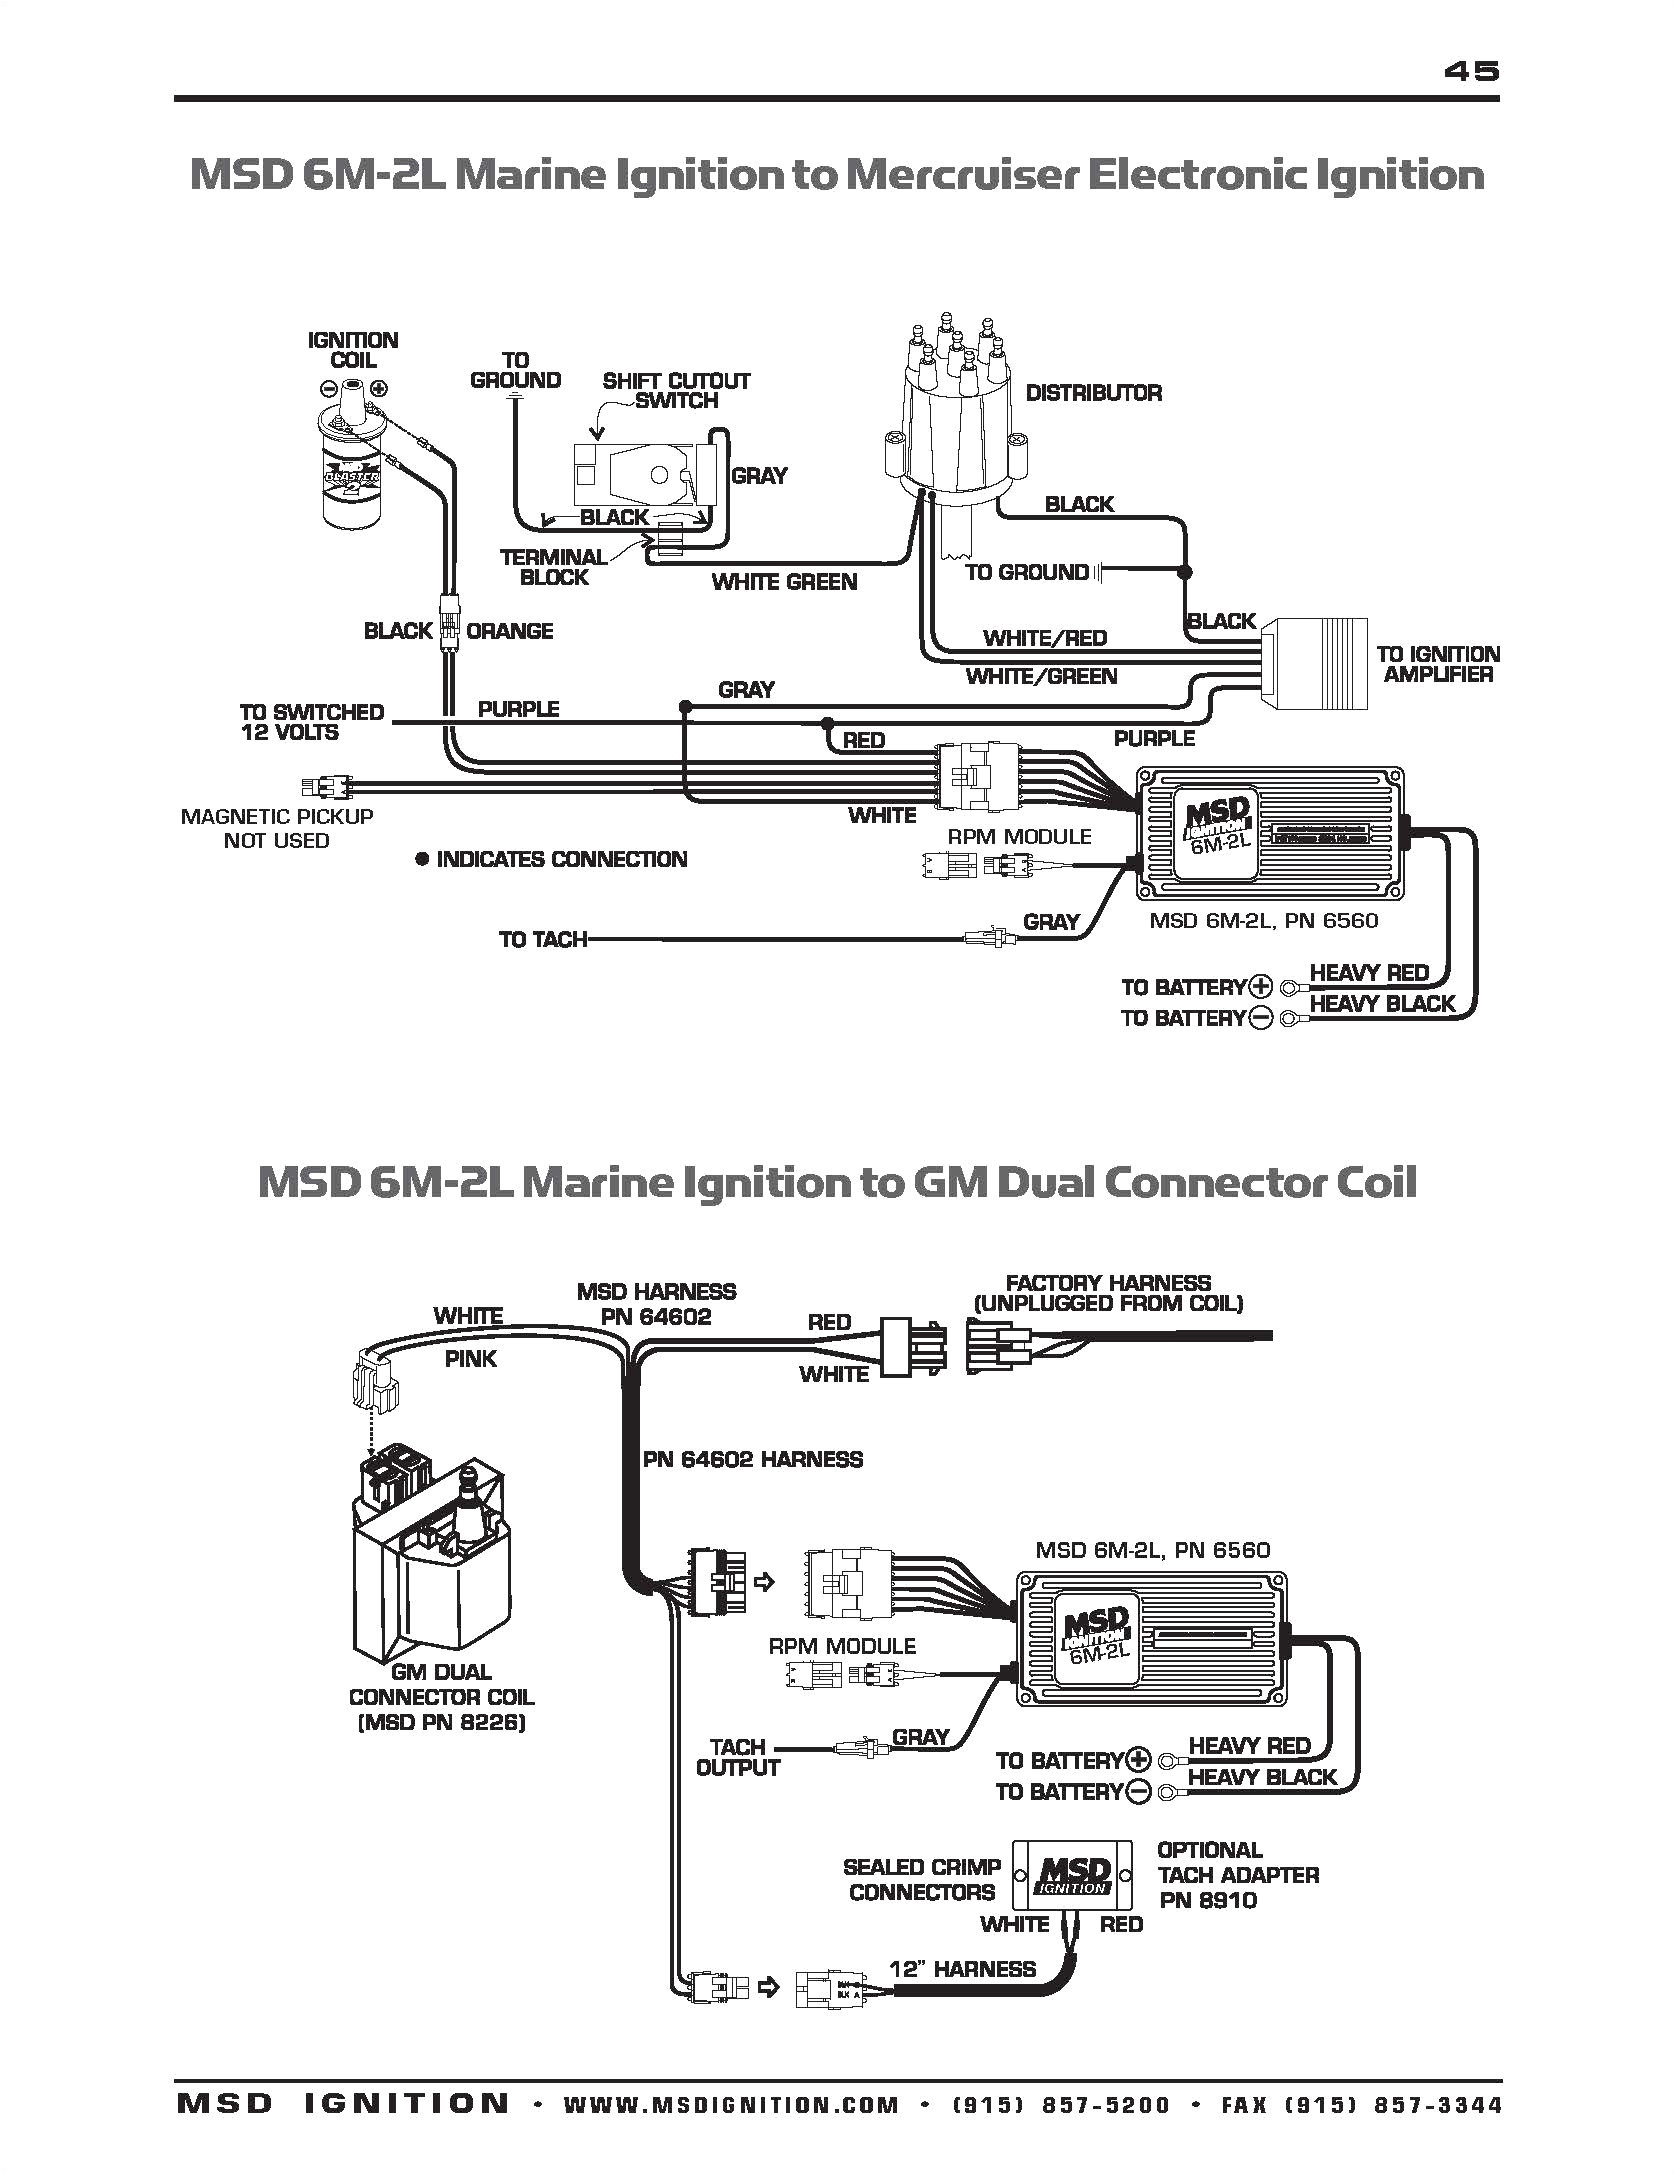 msd coil wire diagram wiring diagram datasourcegm dual connector coil wiring wiring diagrams konsult msd ignition